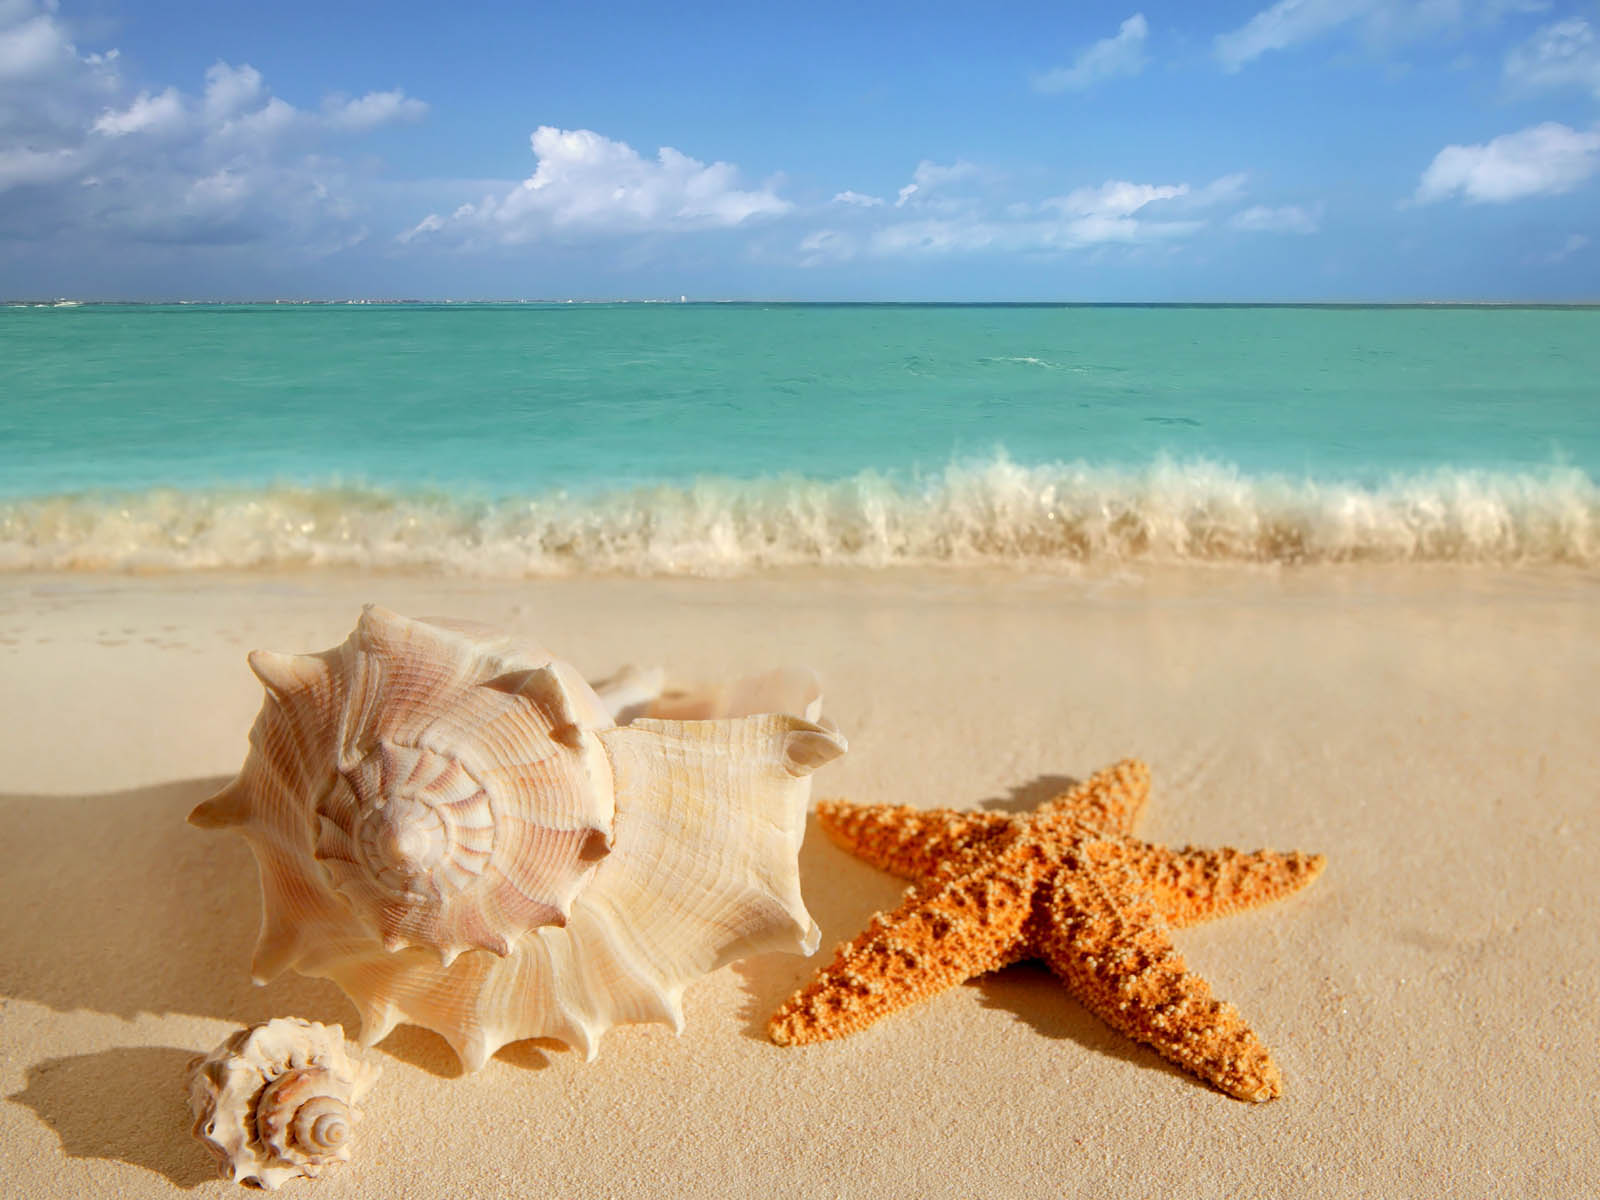 Download Tag Starfish Wallpapers Backgrounds S